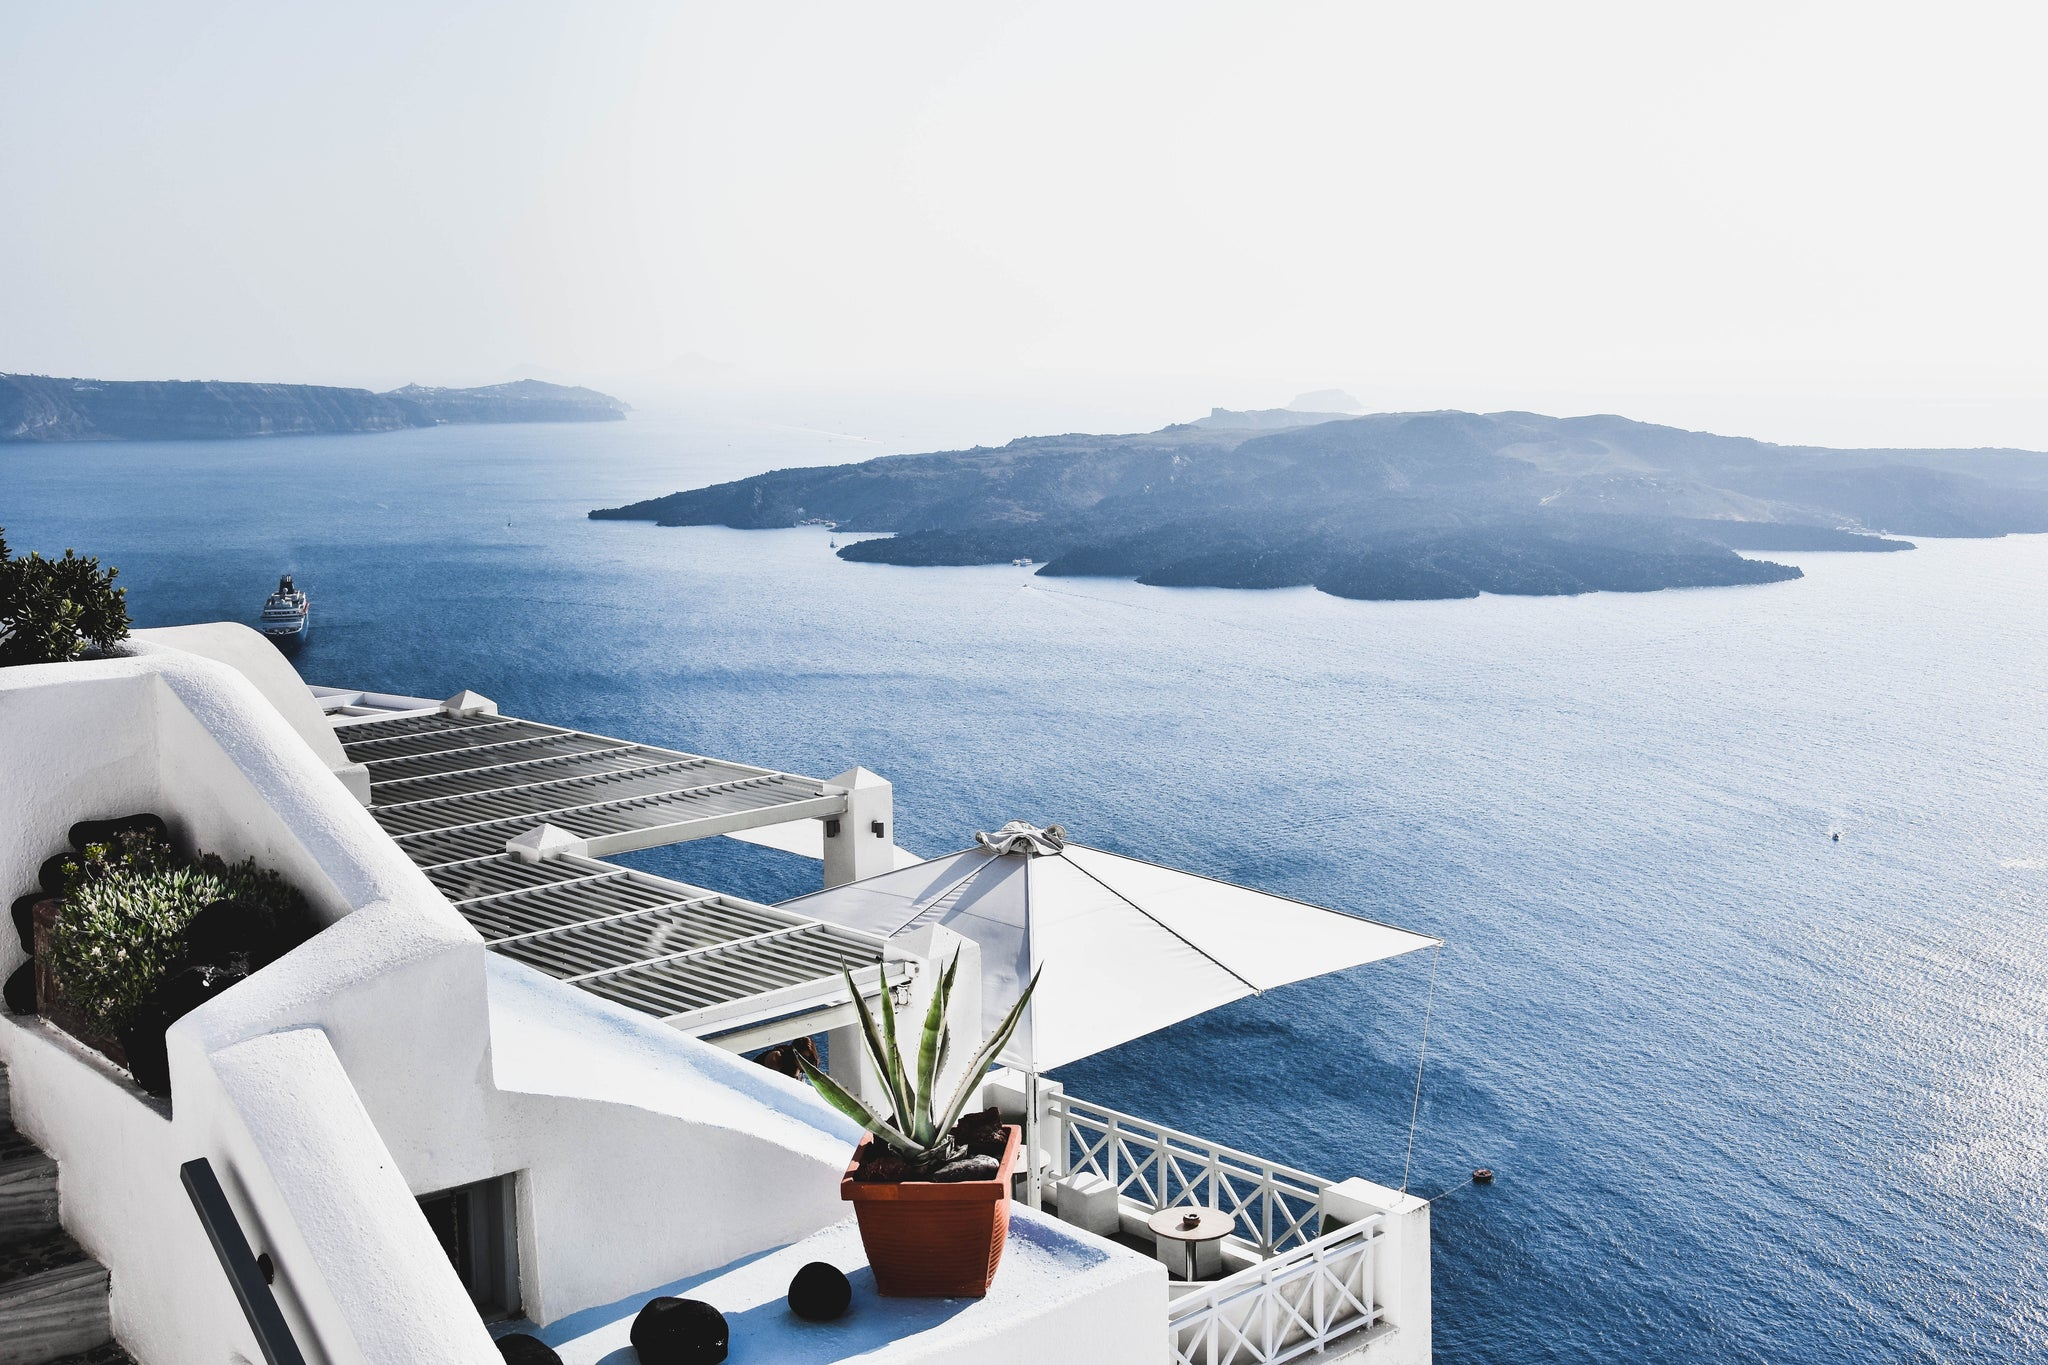 Santorini, Greece. White cliff and sea view. Barrels of London